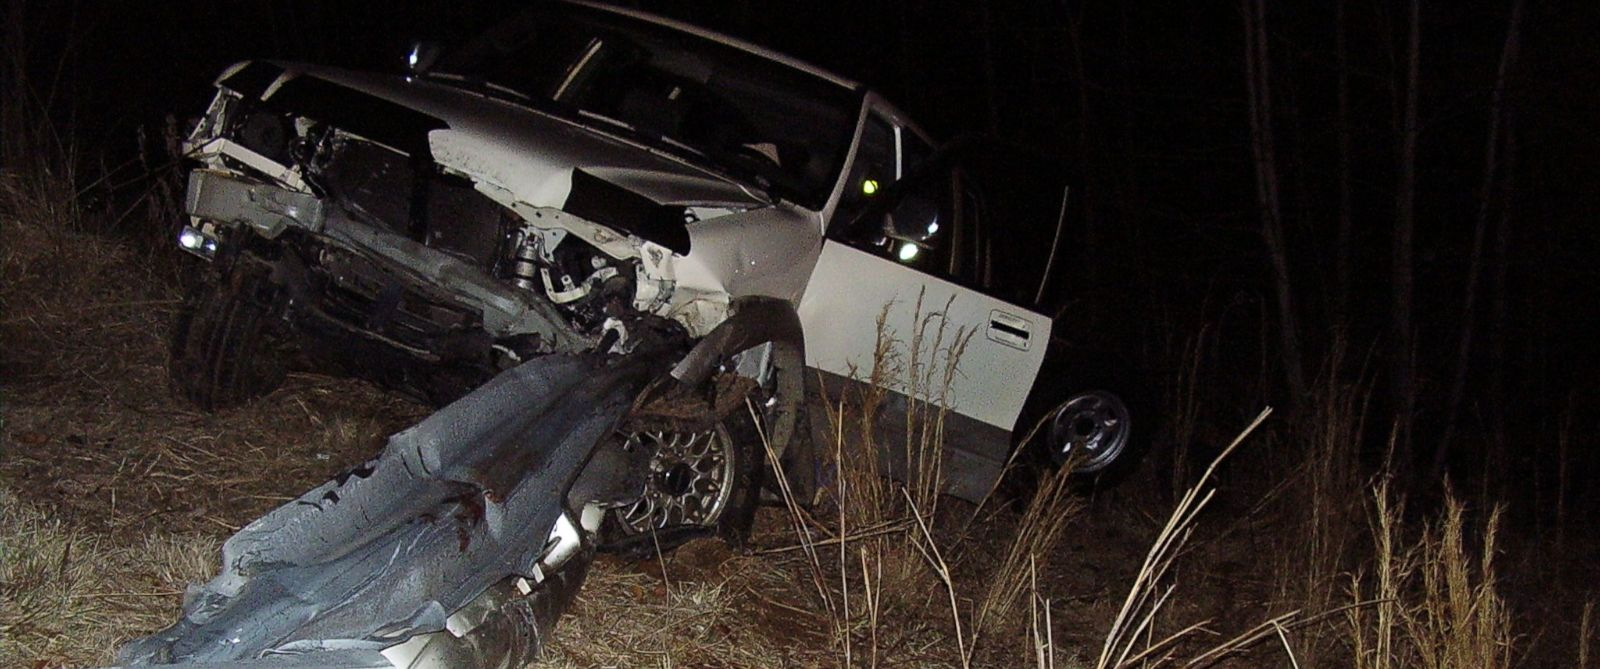 PHOTO: In a wreck in North Carolina, a guardrail pierced the car of N.C. man Jay Traylor, severing his legs.